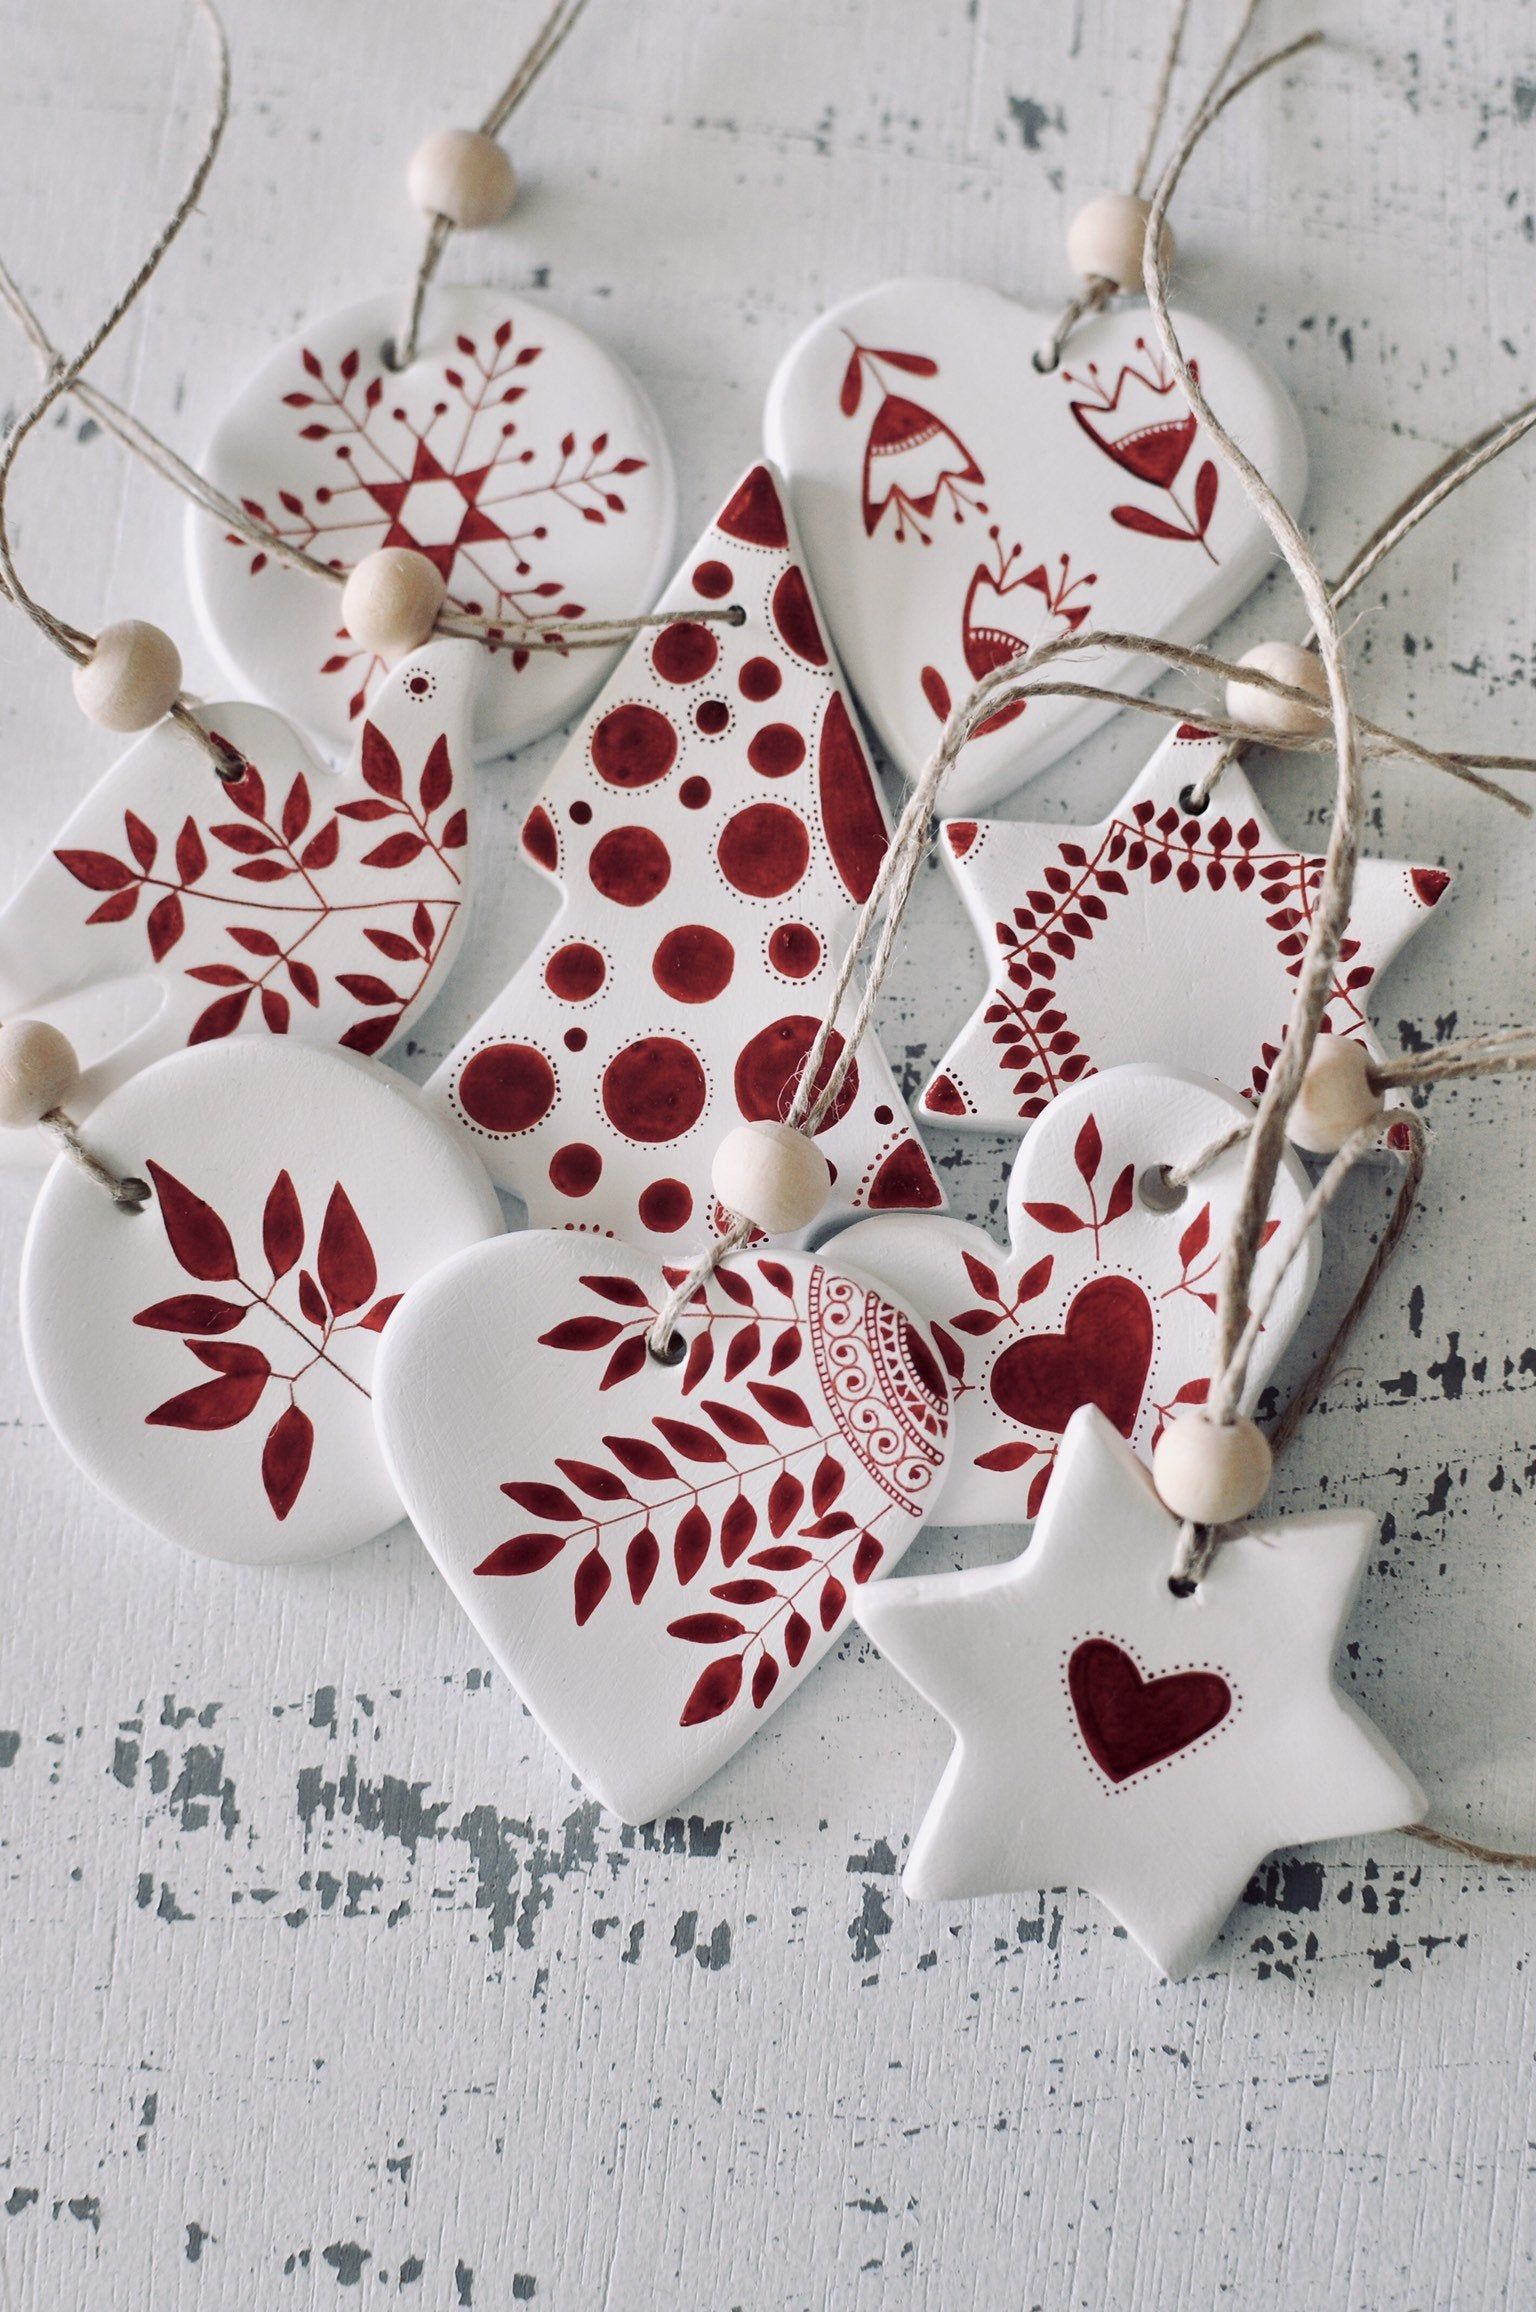 Set Of 9 Christmas Tree Decorations Ornaments Scandinavian Etsy In 2020 Ceramic Christmas Decorations Clay Christmas Decorations Christmas Clay